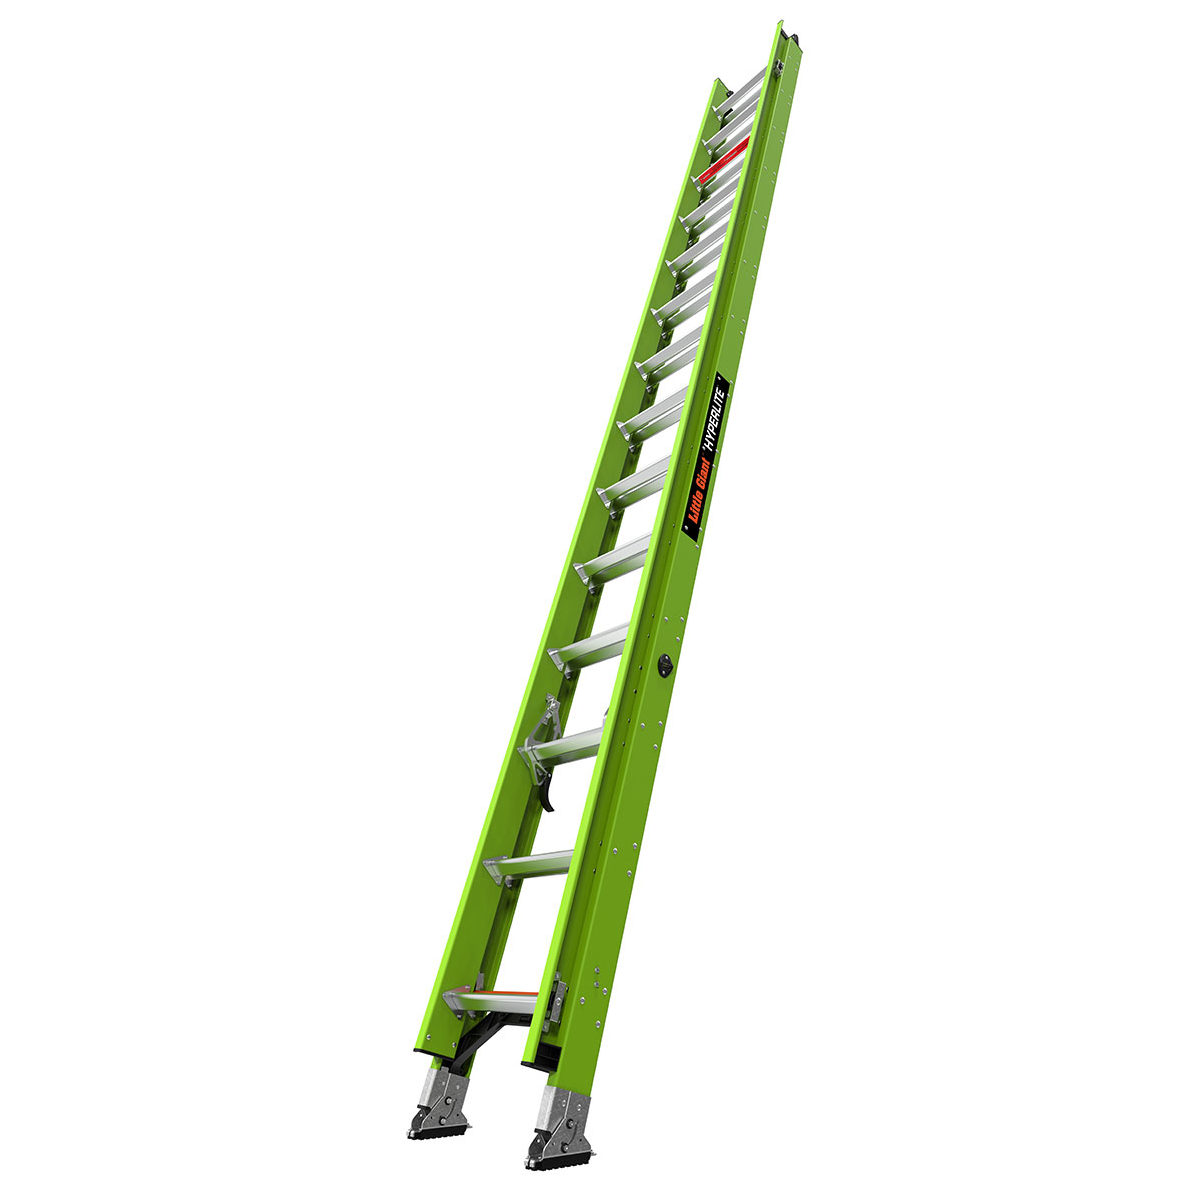 28 Ft. HyperLite Fiberglass Extension Ladder - Type IAA